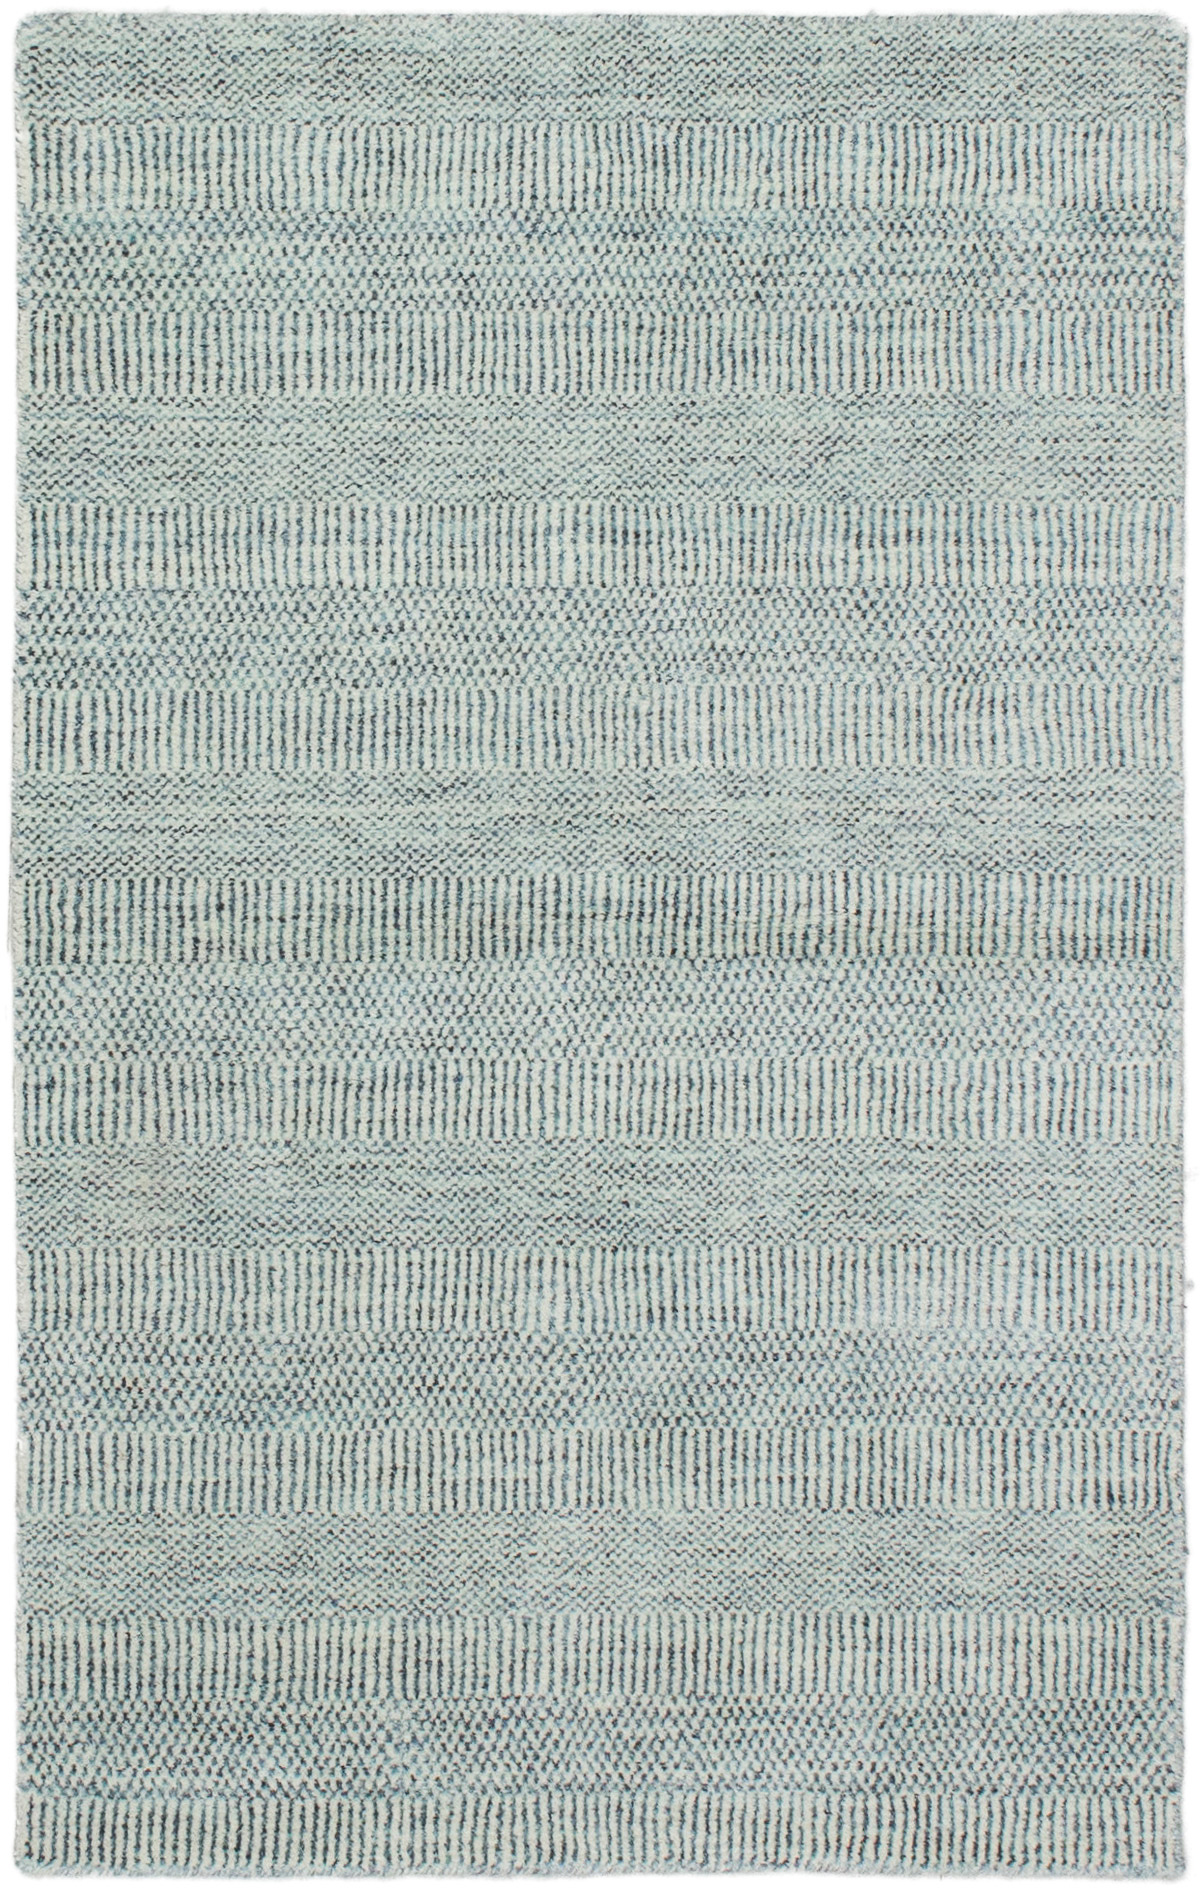 """Hand-knotted Pearl Light Denim Blue  Rug 3'0"""" x 5'0"""" Size: 3'0"""" x 5'0"""""""